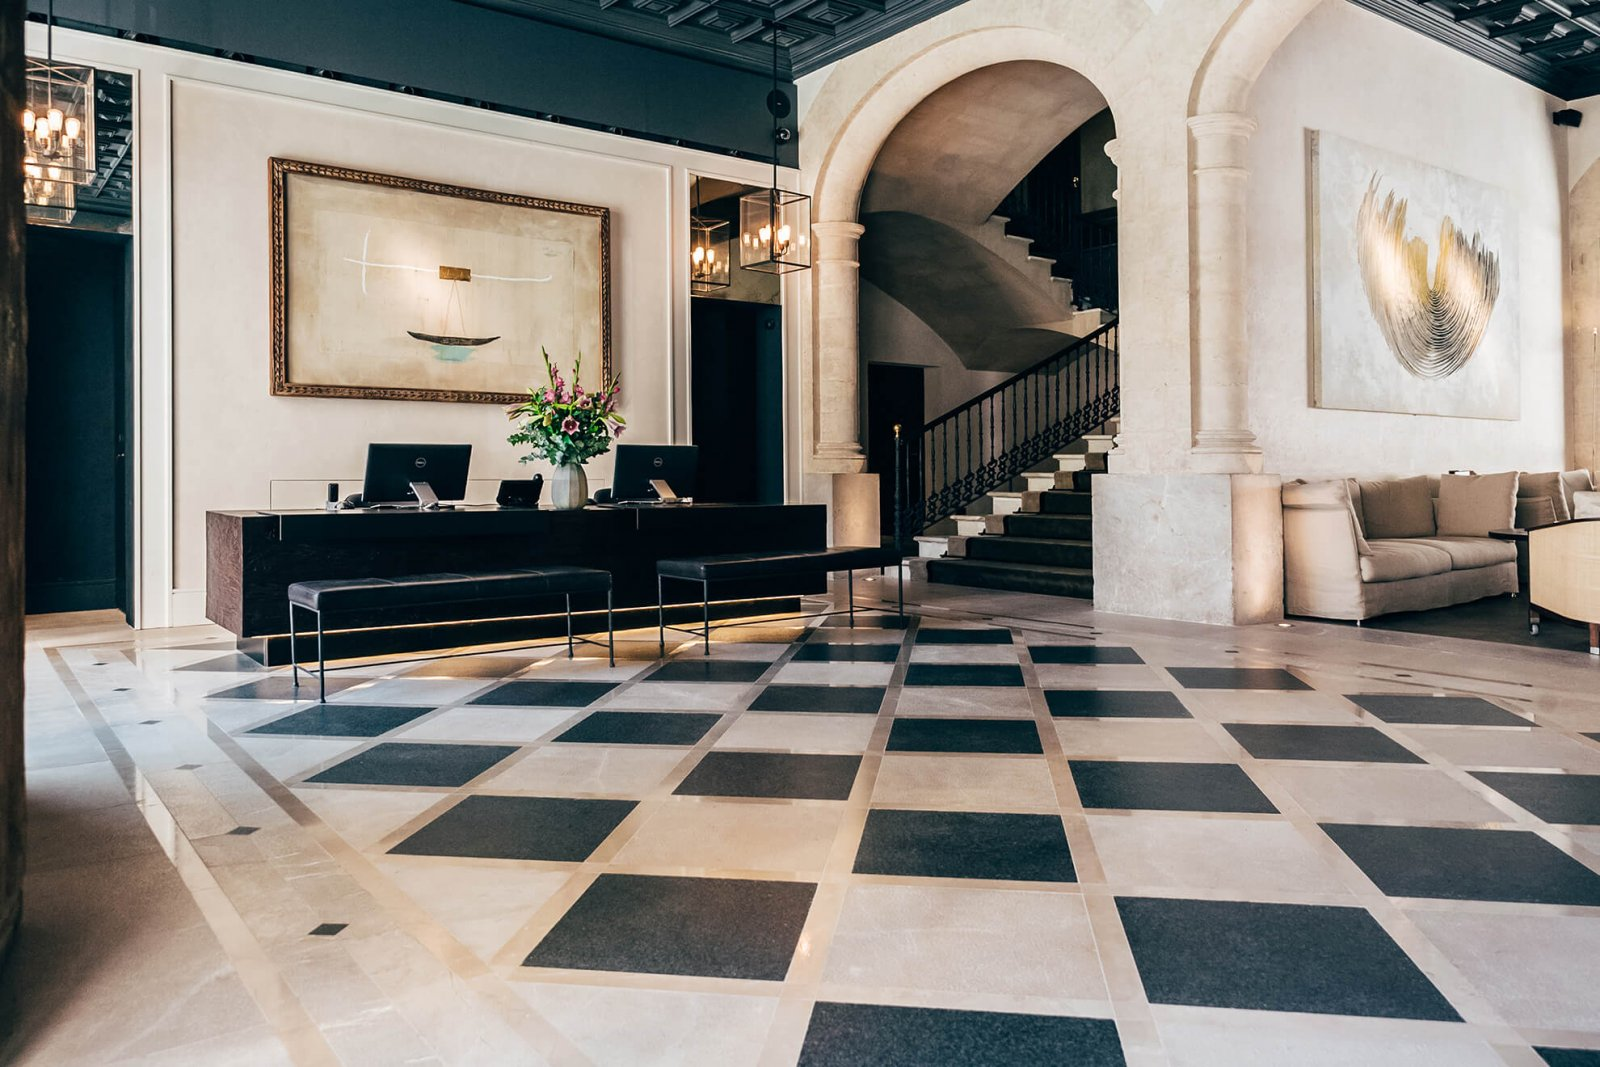 Detail of the hall with the front desk and majestic stairs at Sant Francesc Hotel Boutique